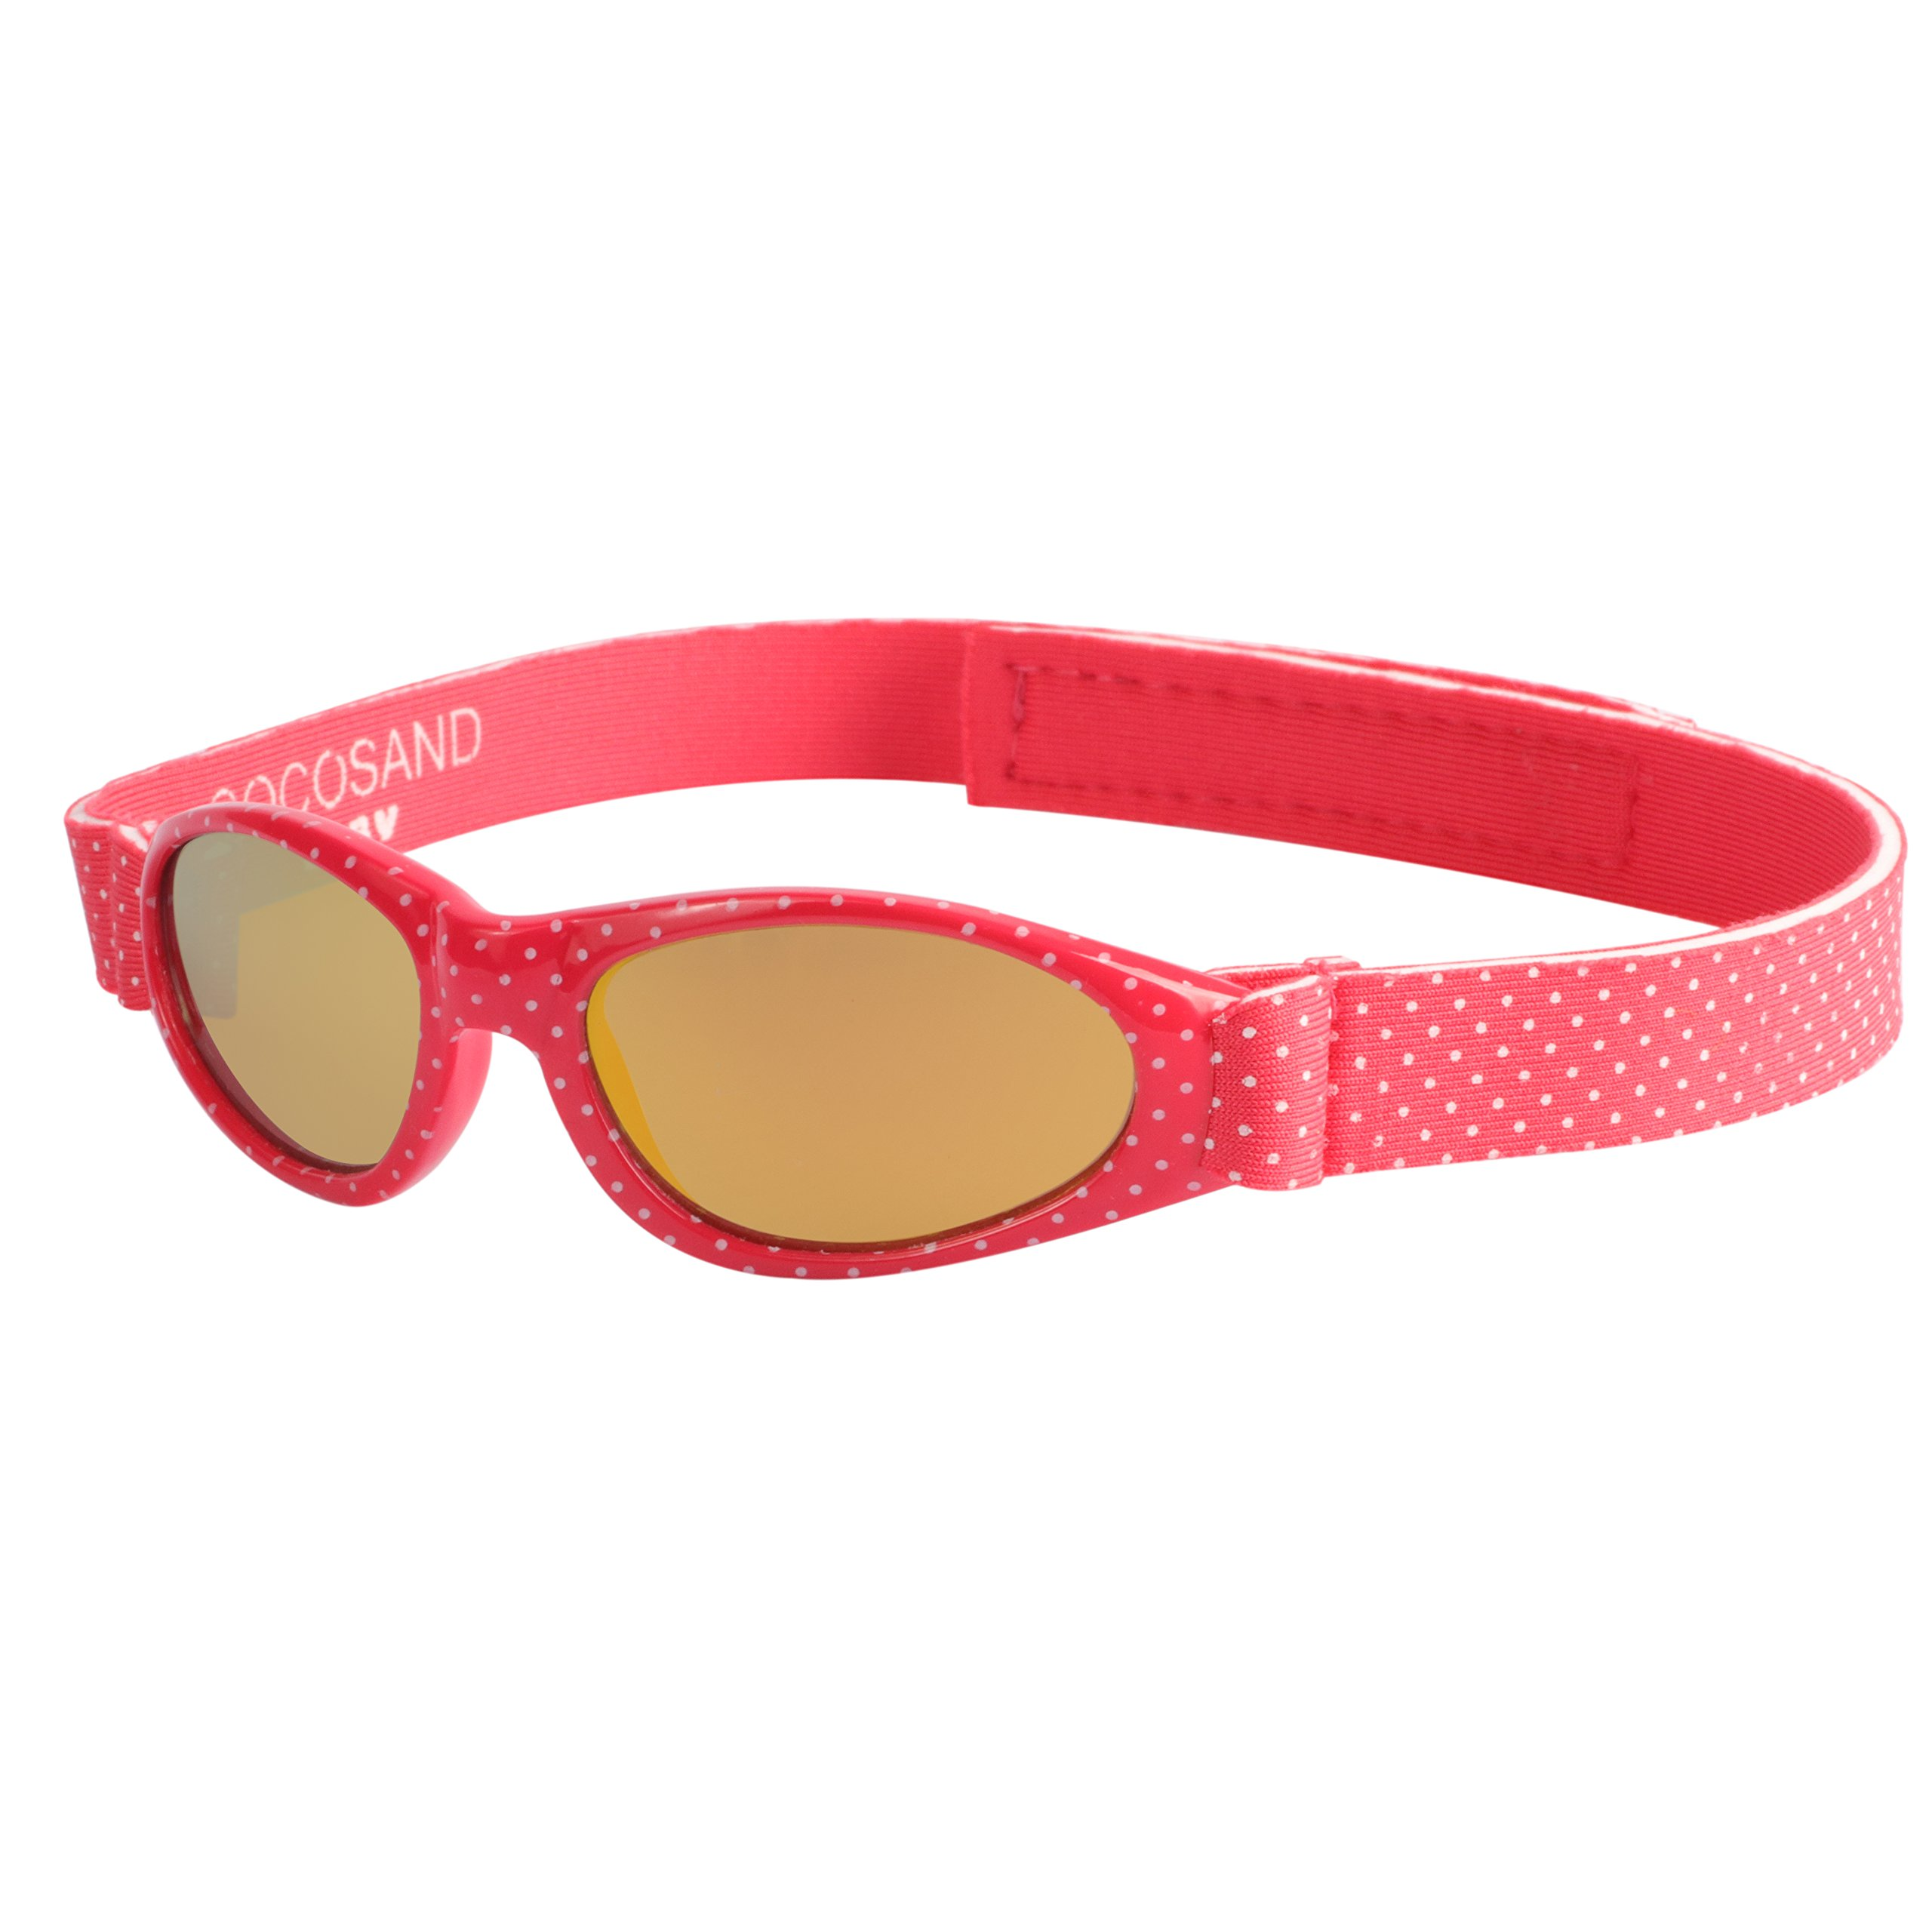 Baby Navigator Sunglasses with UV400 Lens and Adjustable Neoprene Straps & Exciting colors Age: 0-12months. (Strawberry Red with Red Revo)